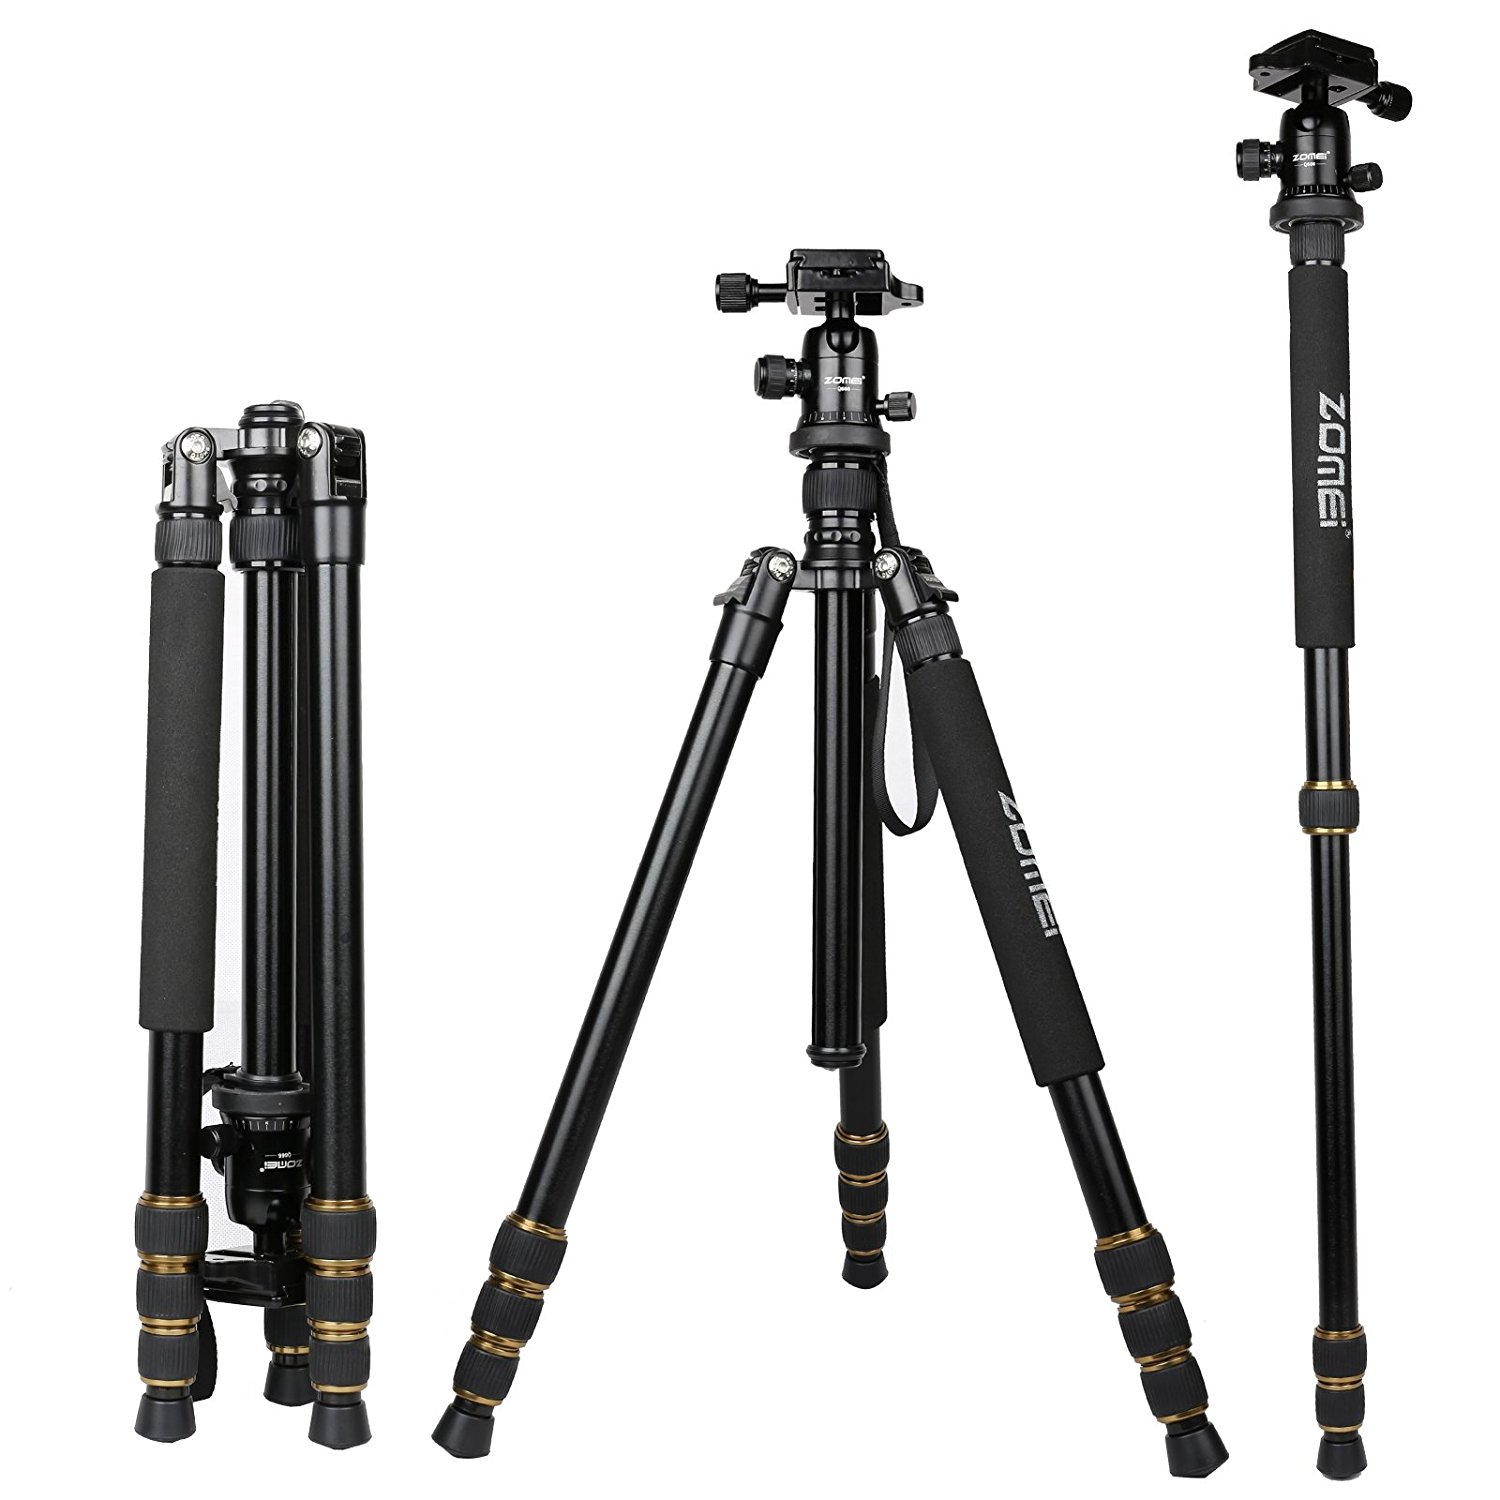 Amazon.com : ZOMEI Q666 Proline Tripod with Ball Head for Cameras ...